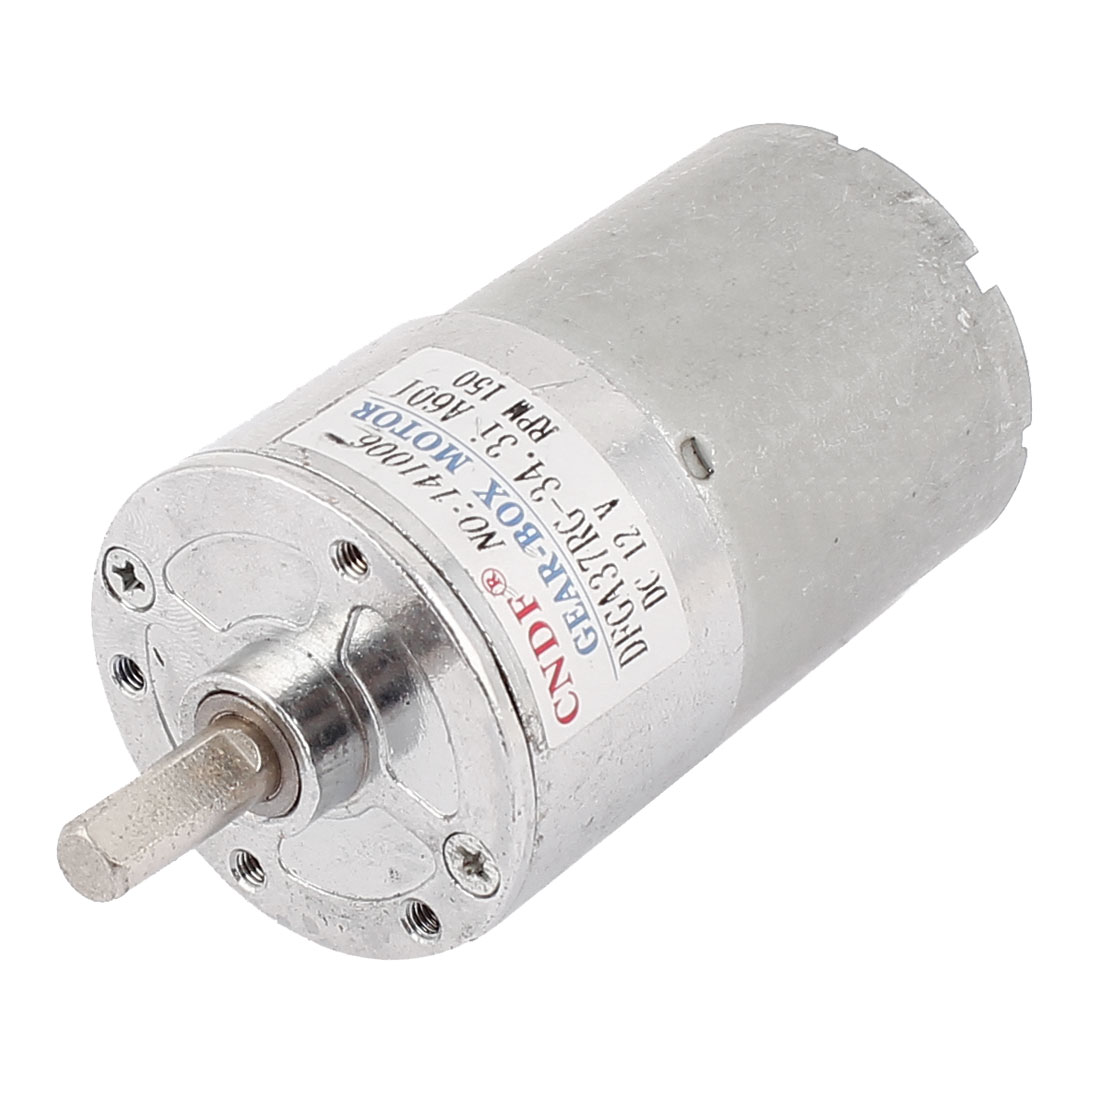 DC 12V 6mm Shaft 150RPM Speed Reducing Gear Box Electric Motor